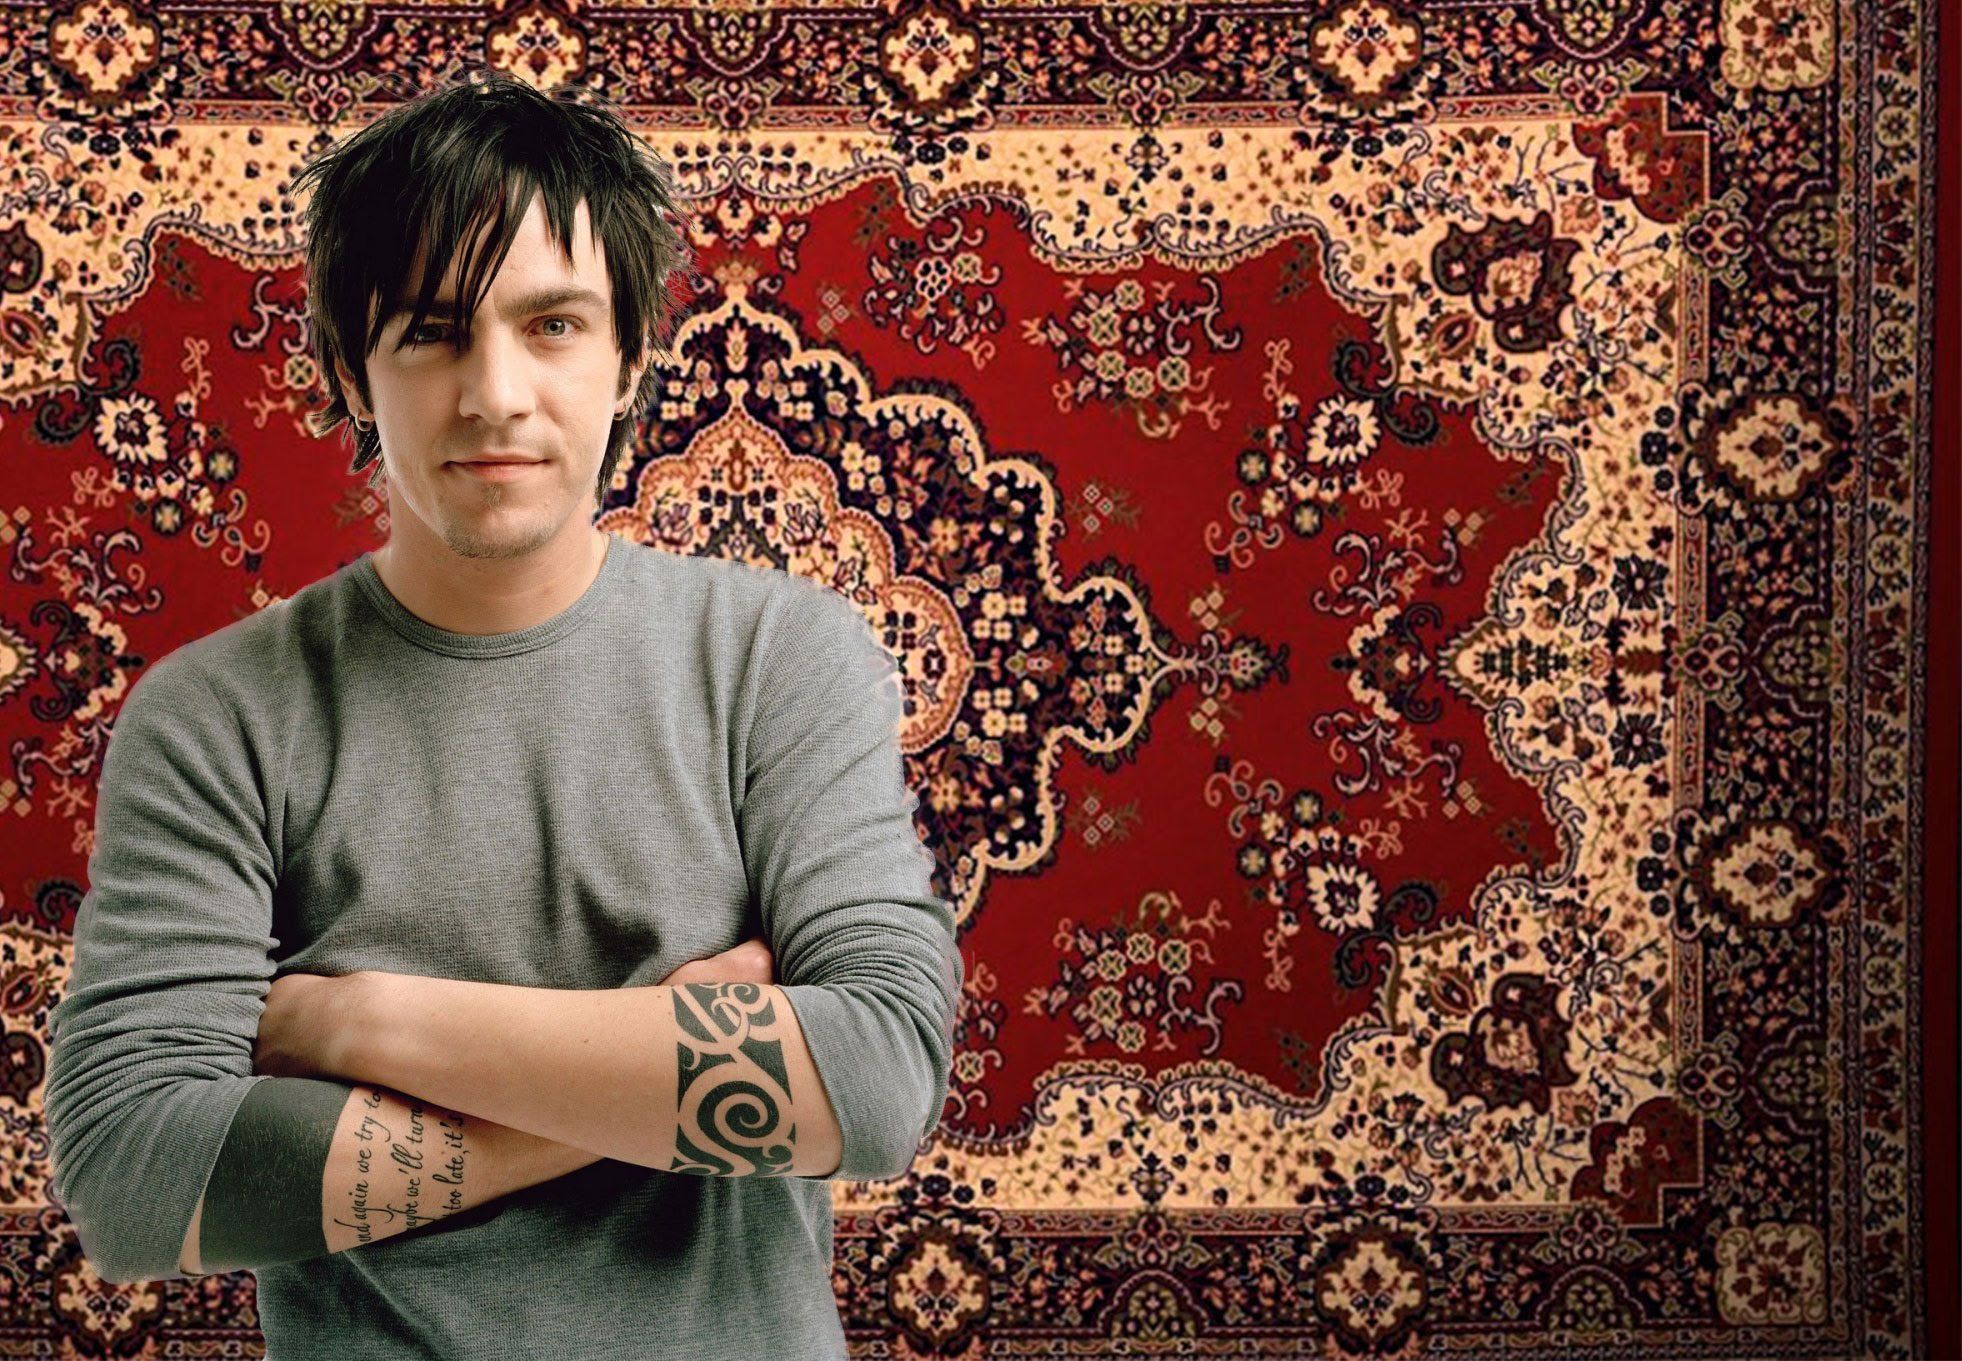 Adam Gontier High Quality Wallpapers